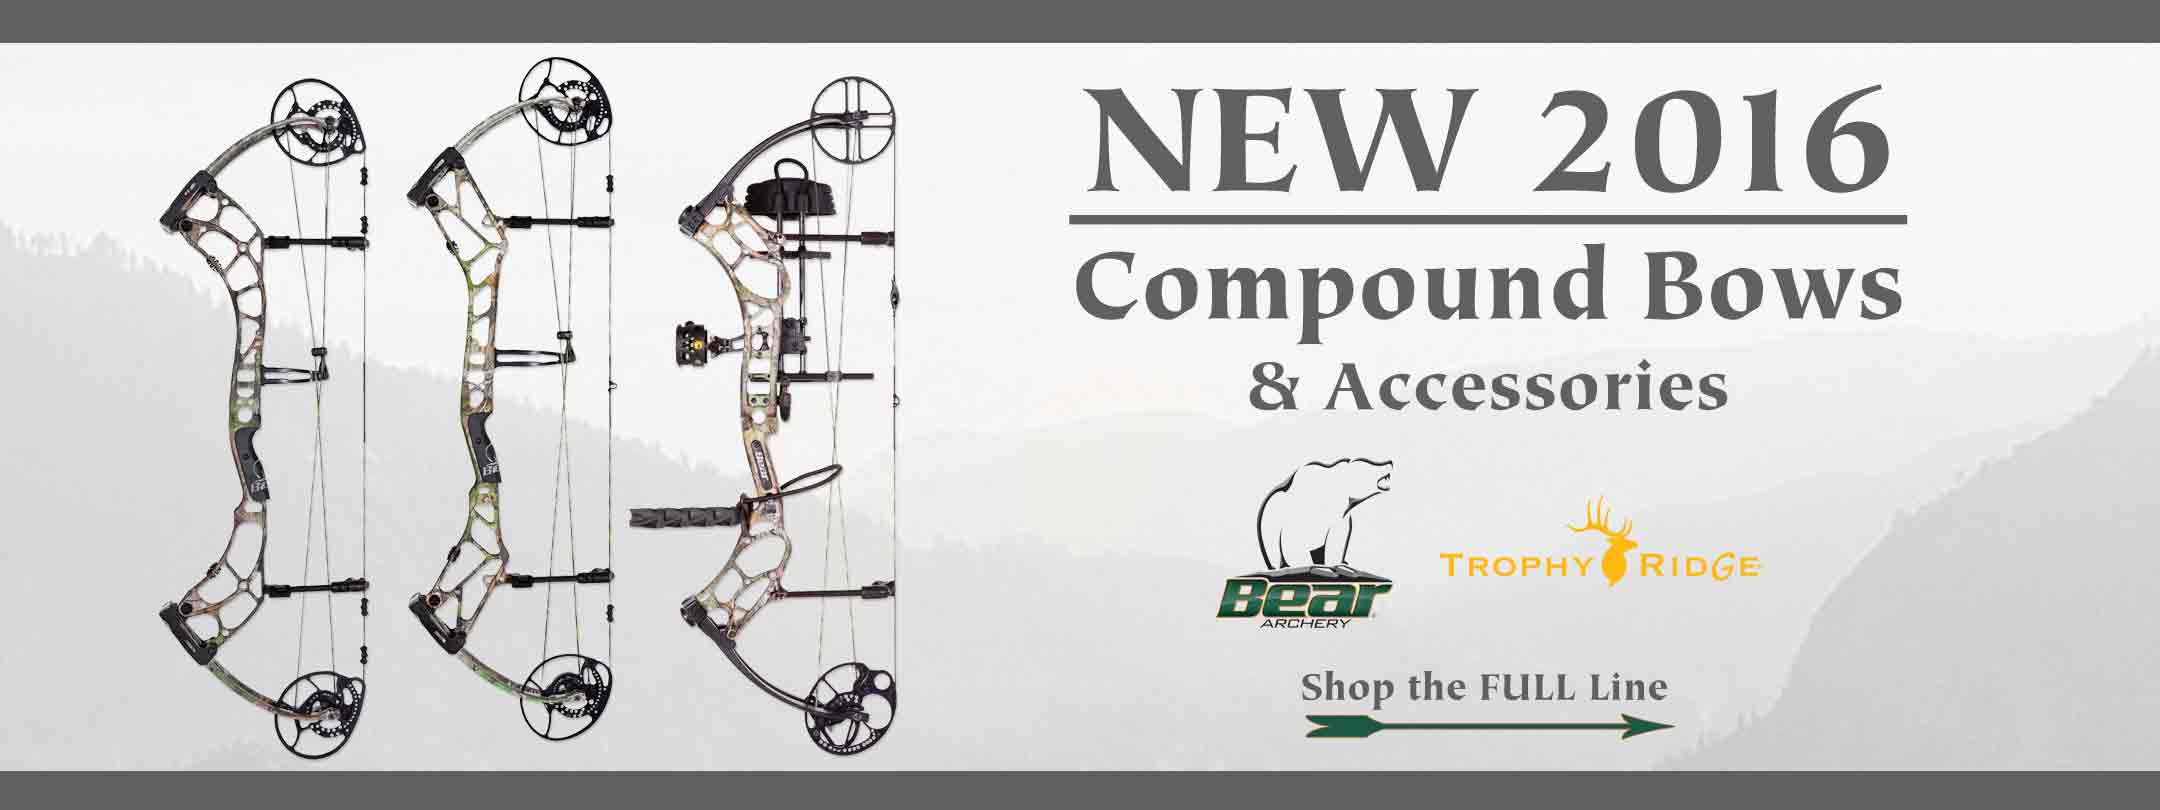 Shop the NEW 2016 Bear Compound Bows & Trophy Ridge Accessories